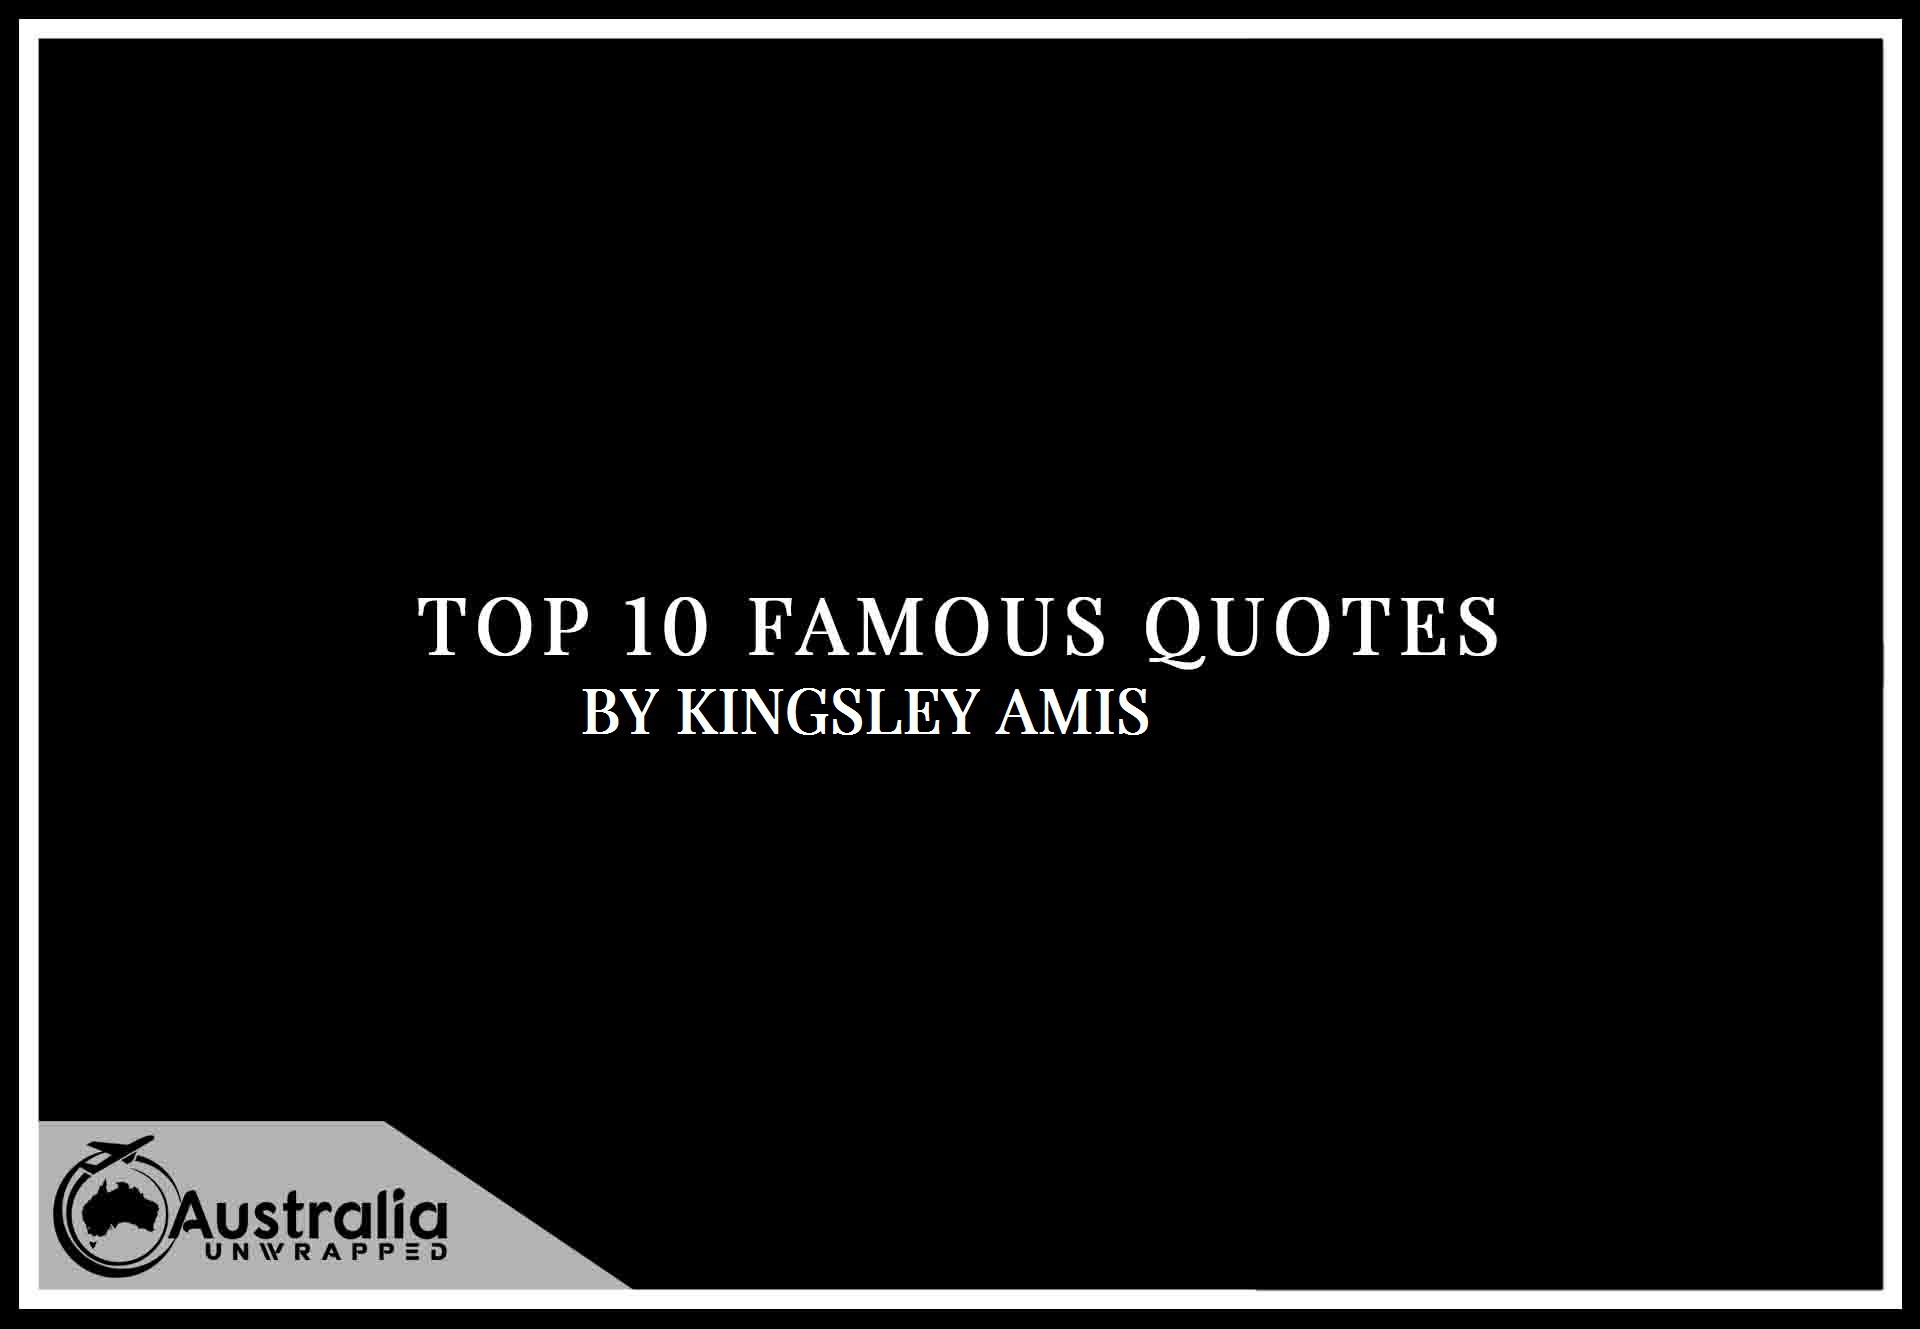 Kingsley Amis's Top 10 Popular and Famous Quotes